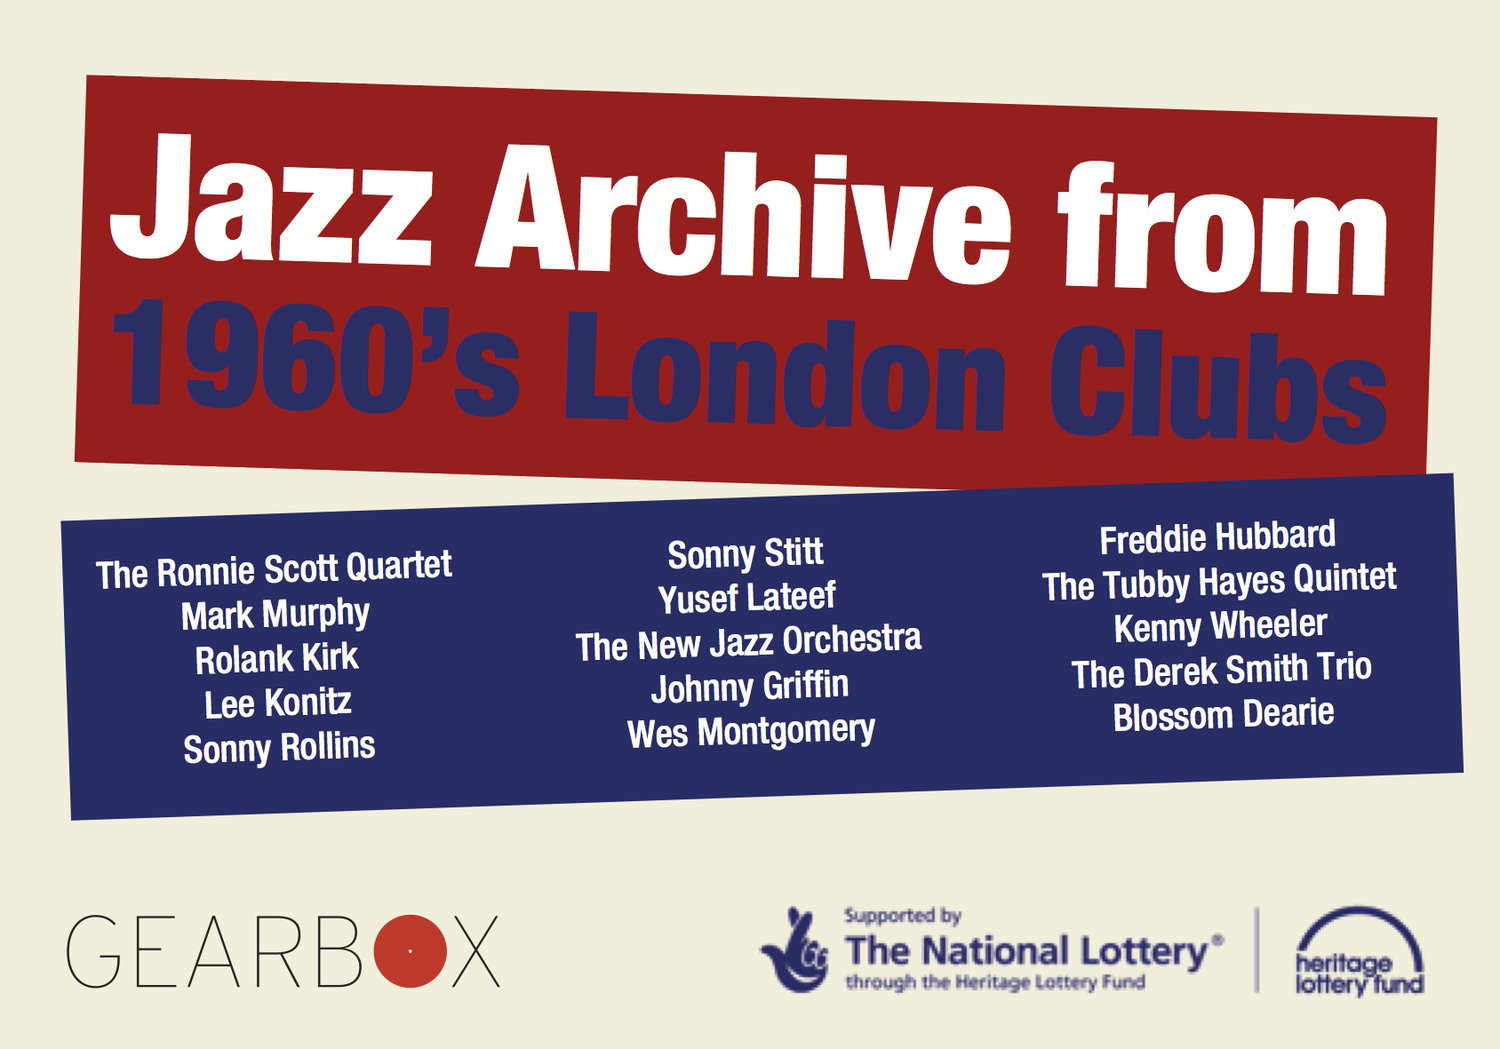 Jazz Archive from 1960's London Clubs